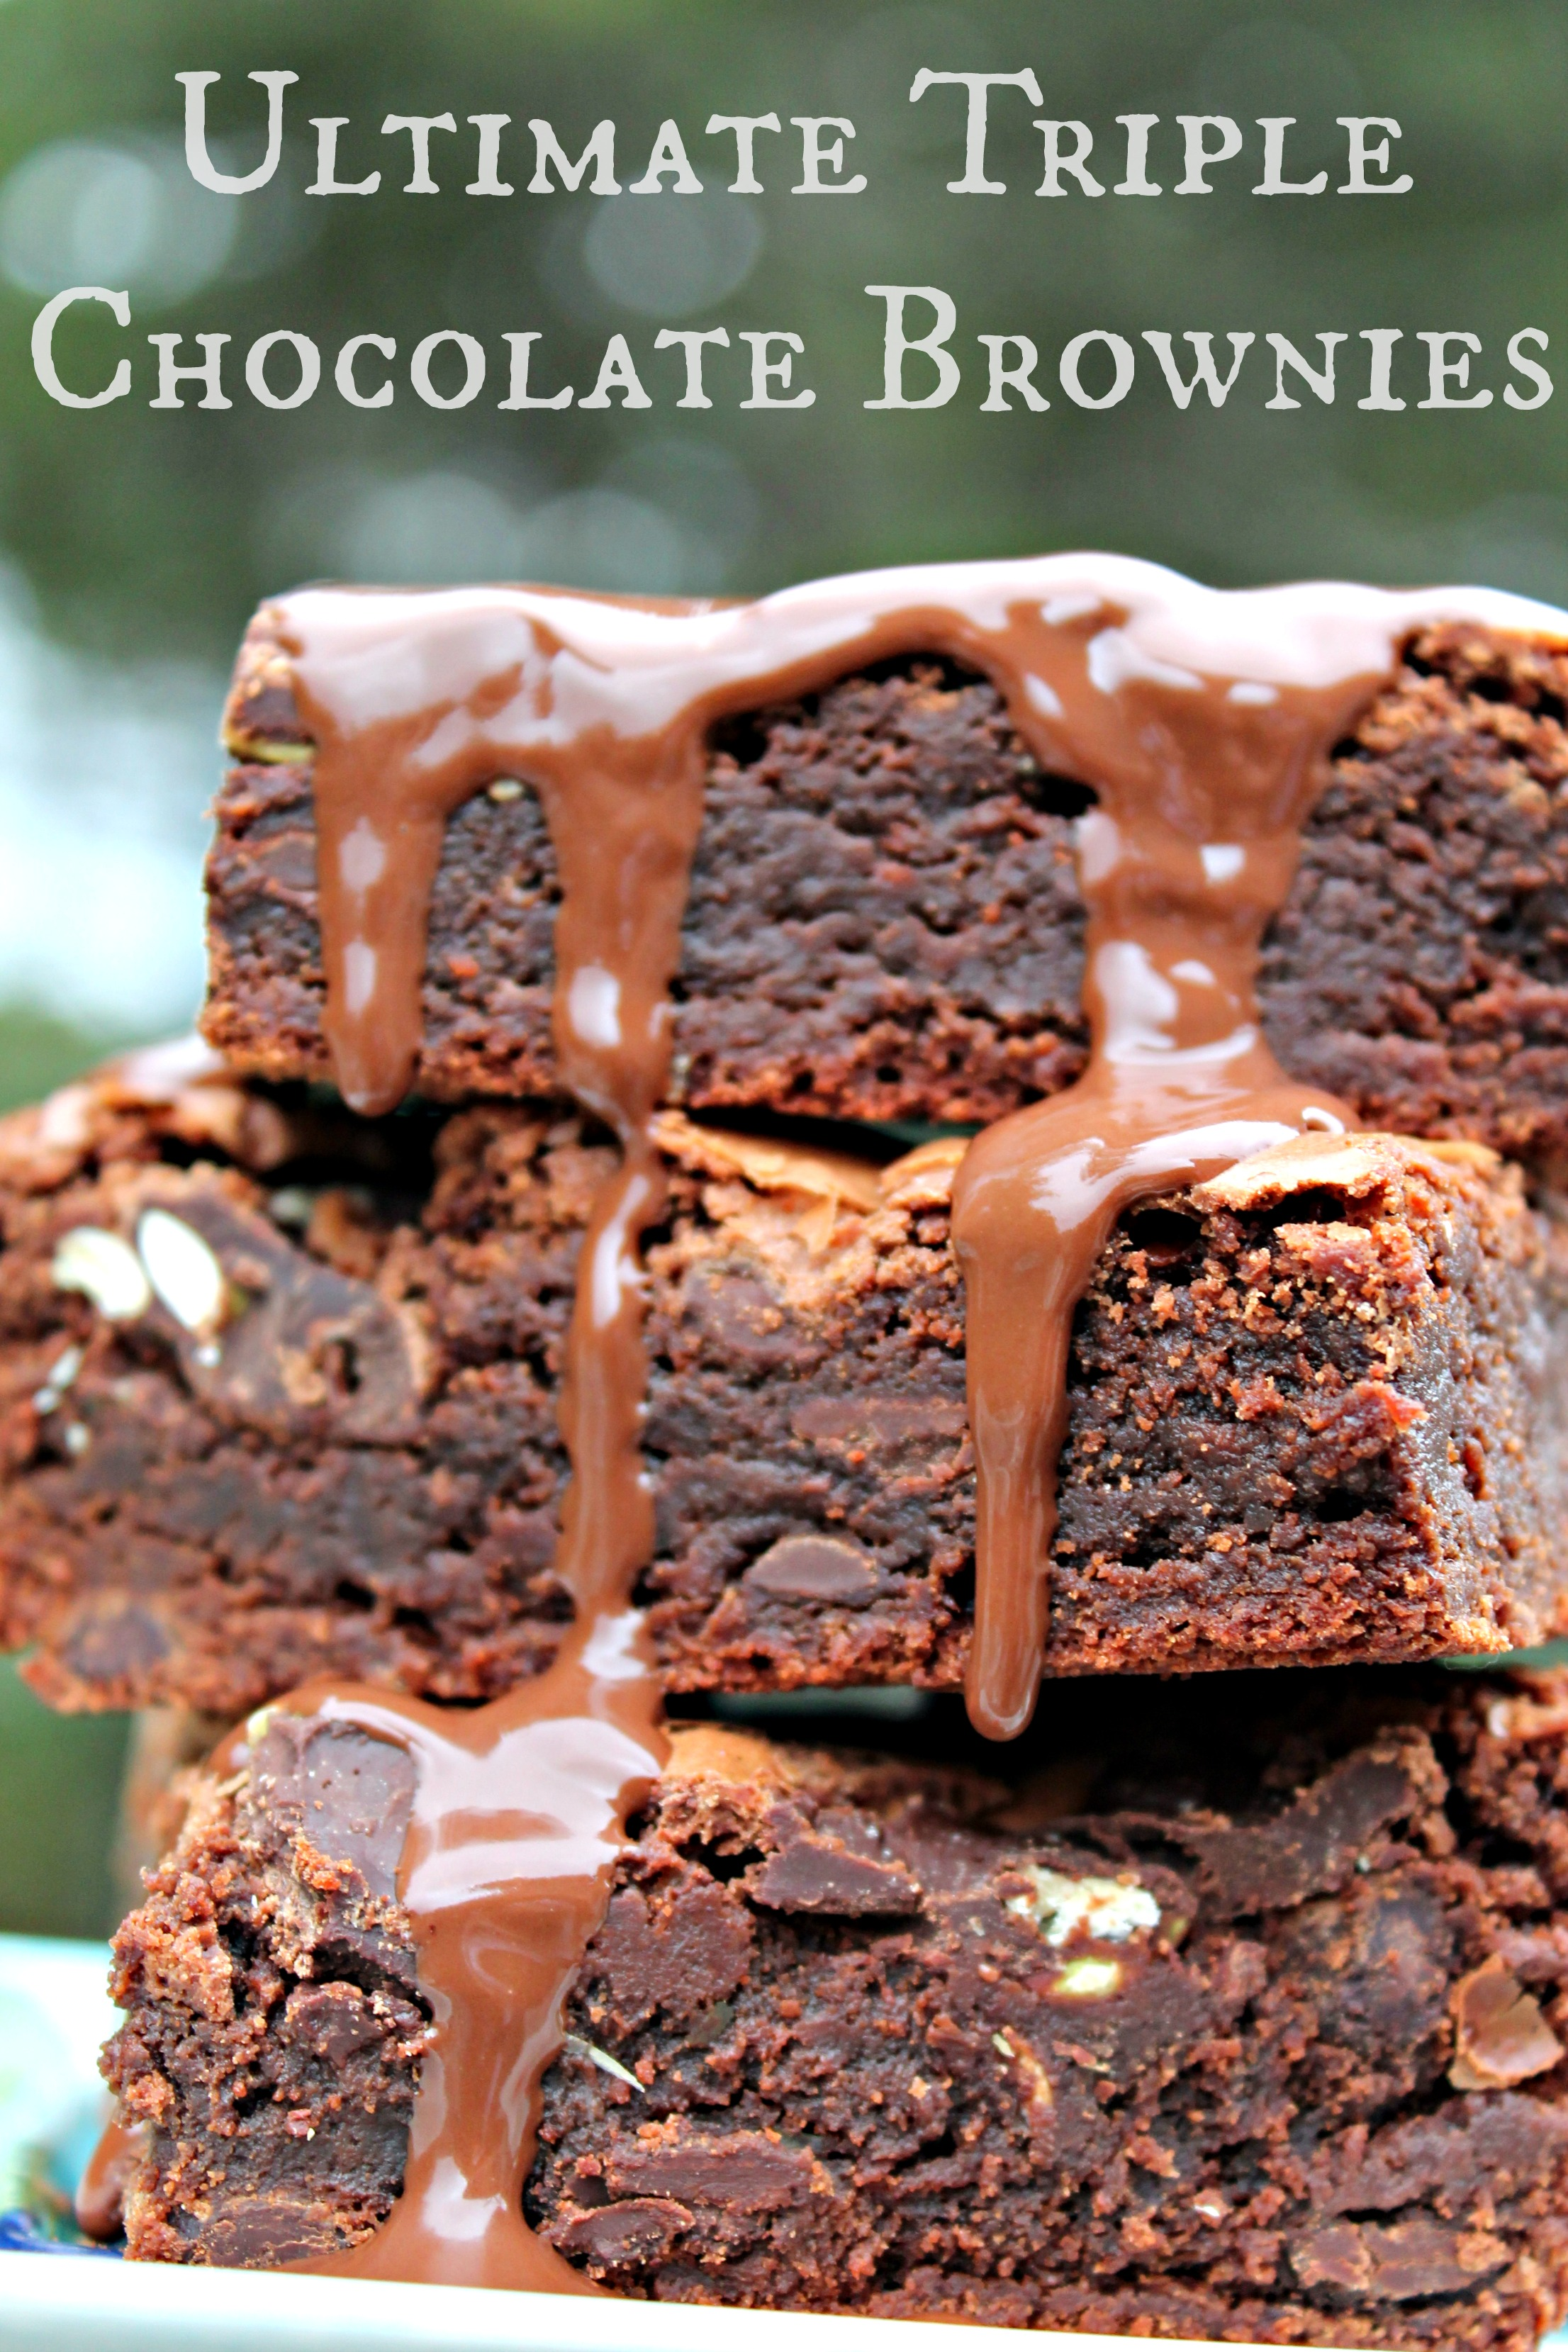 Ultimate Triple Chocolate Brownies - Cooking with Books